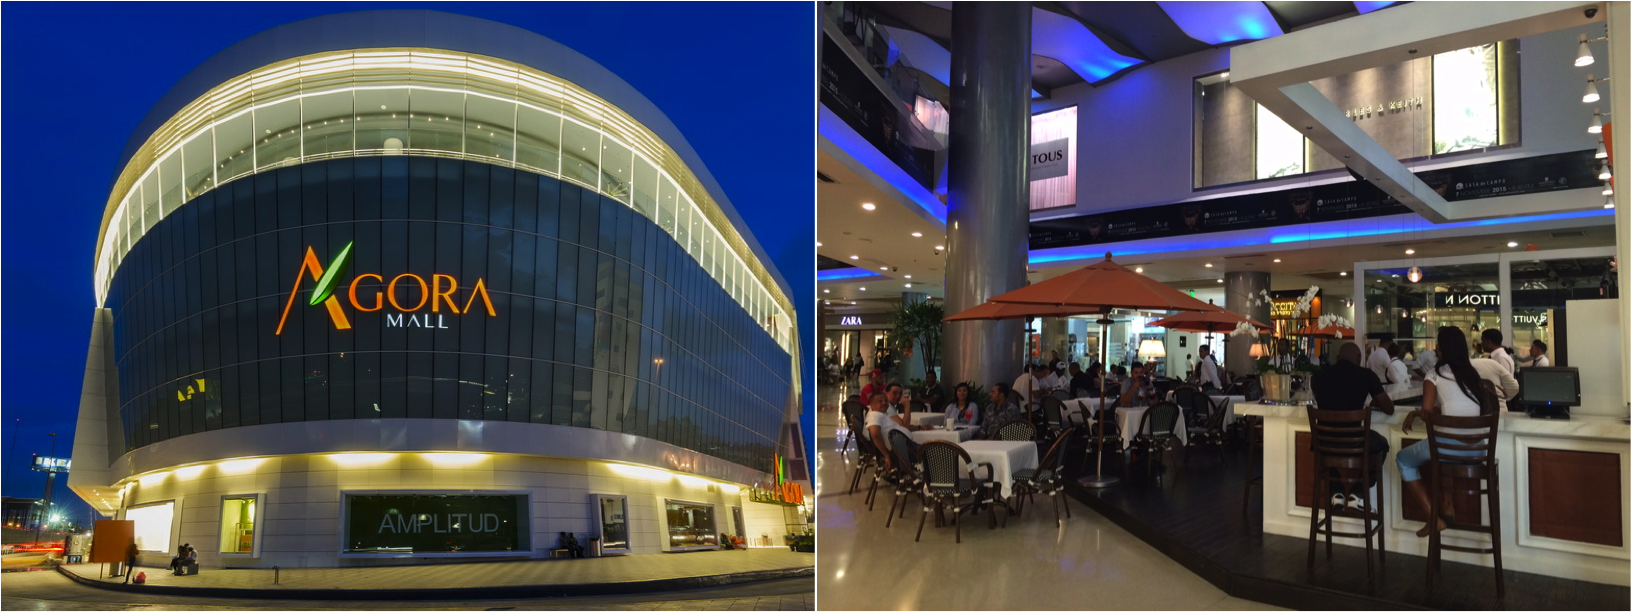 Ágora Mall & Blue Mall, shoppings em Santo Domingo